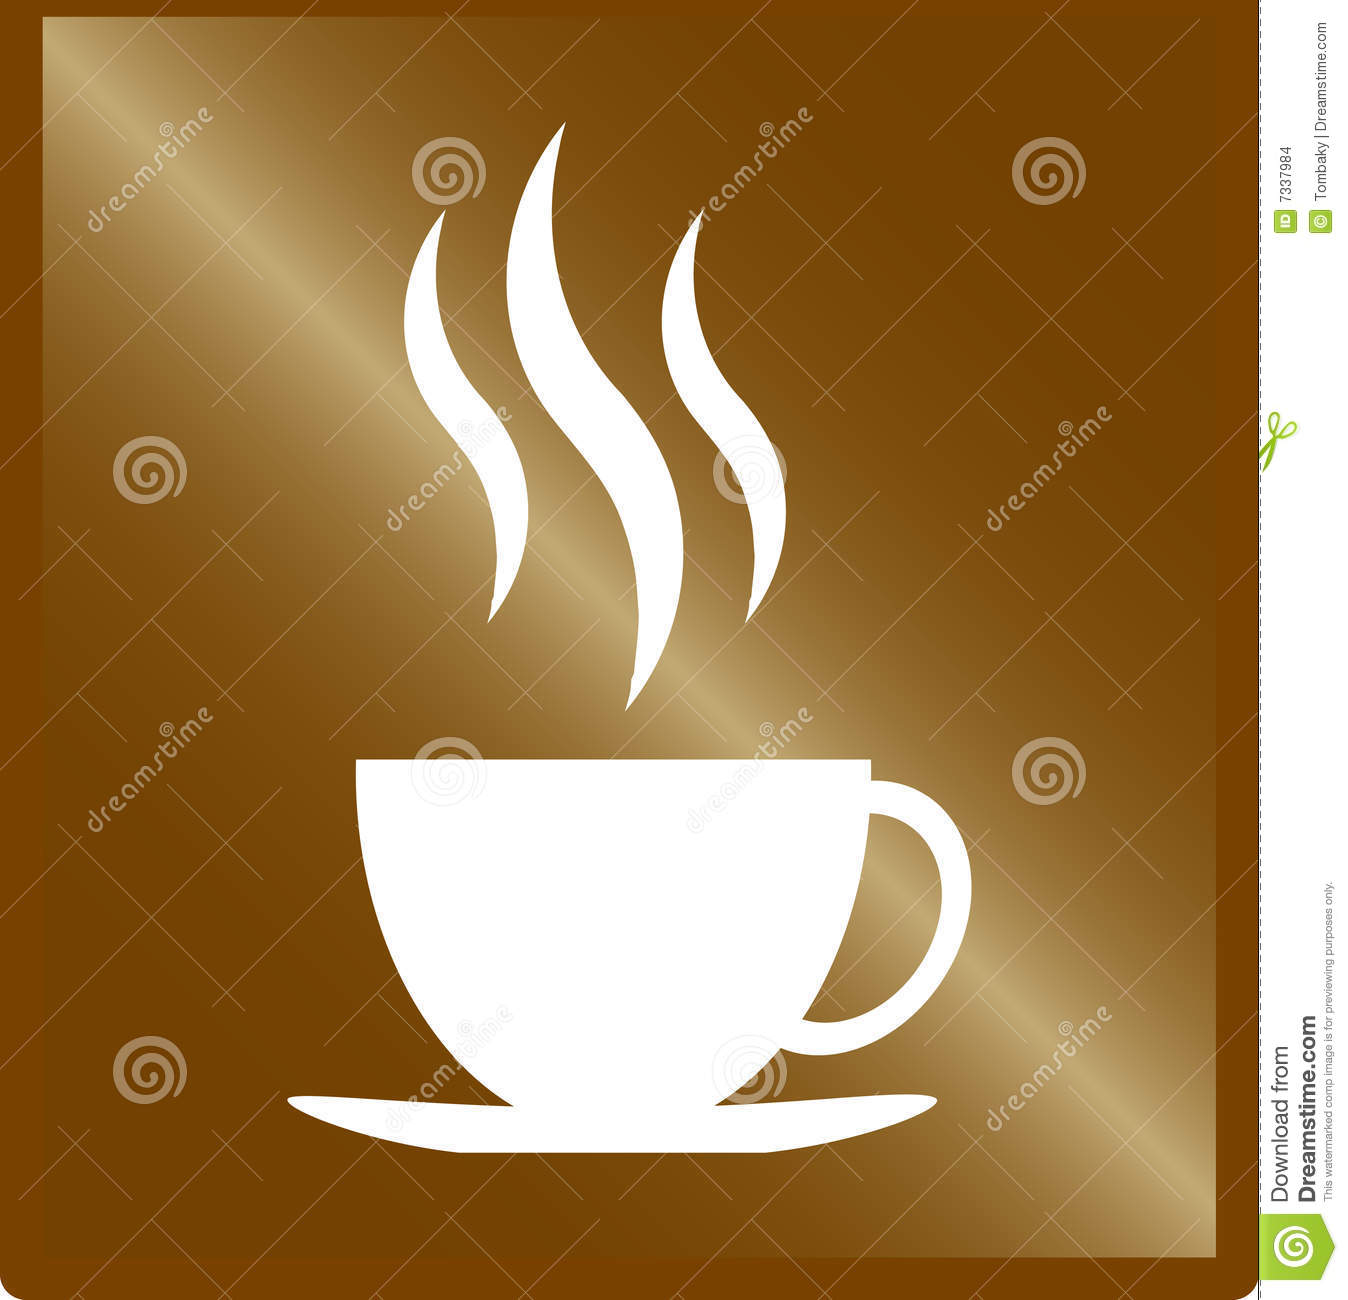 Coffee Cup Vector Stock Images - Image: 7337984